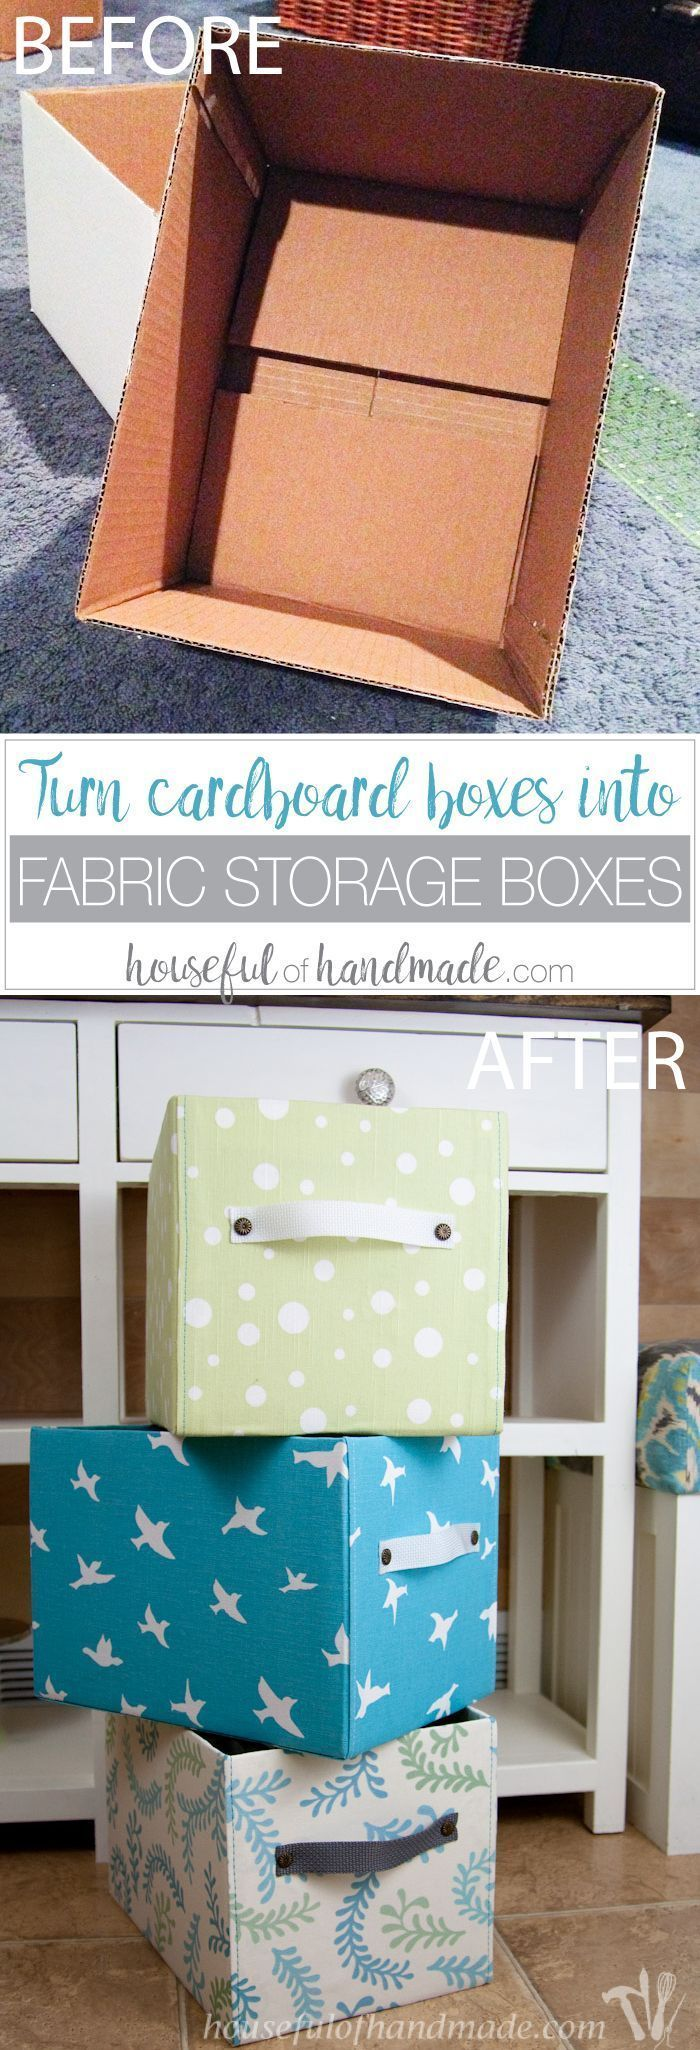 Upcycle cardboard boxes into beautiful fabric storage boxes. Easy tutorial that anyone can do. Save yourself tons of money over buying storage boxes. | http://Housefulofhandmade.com